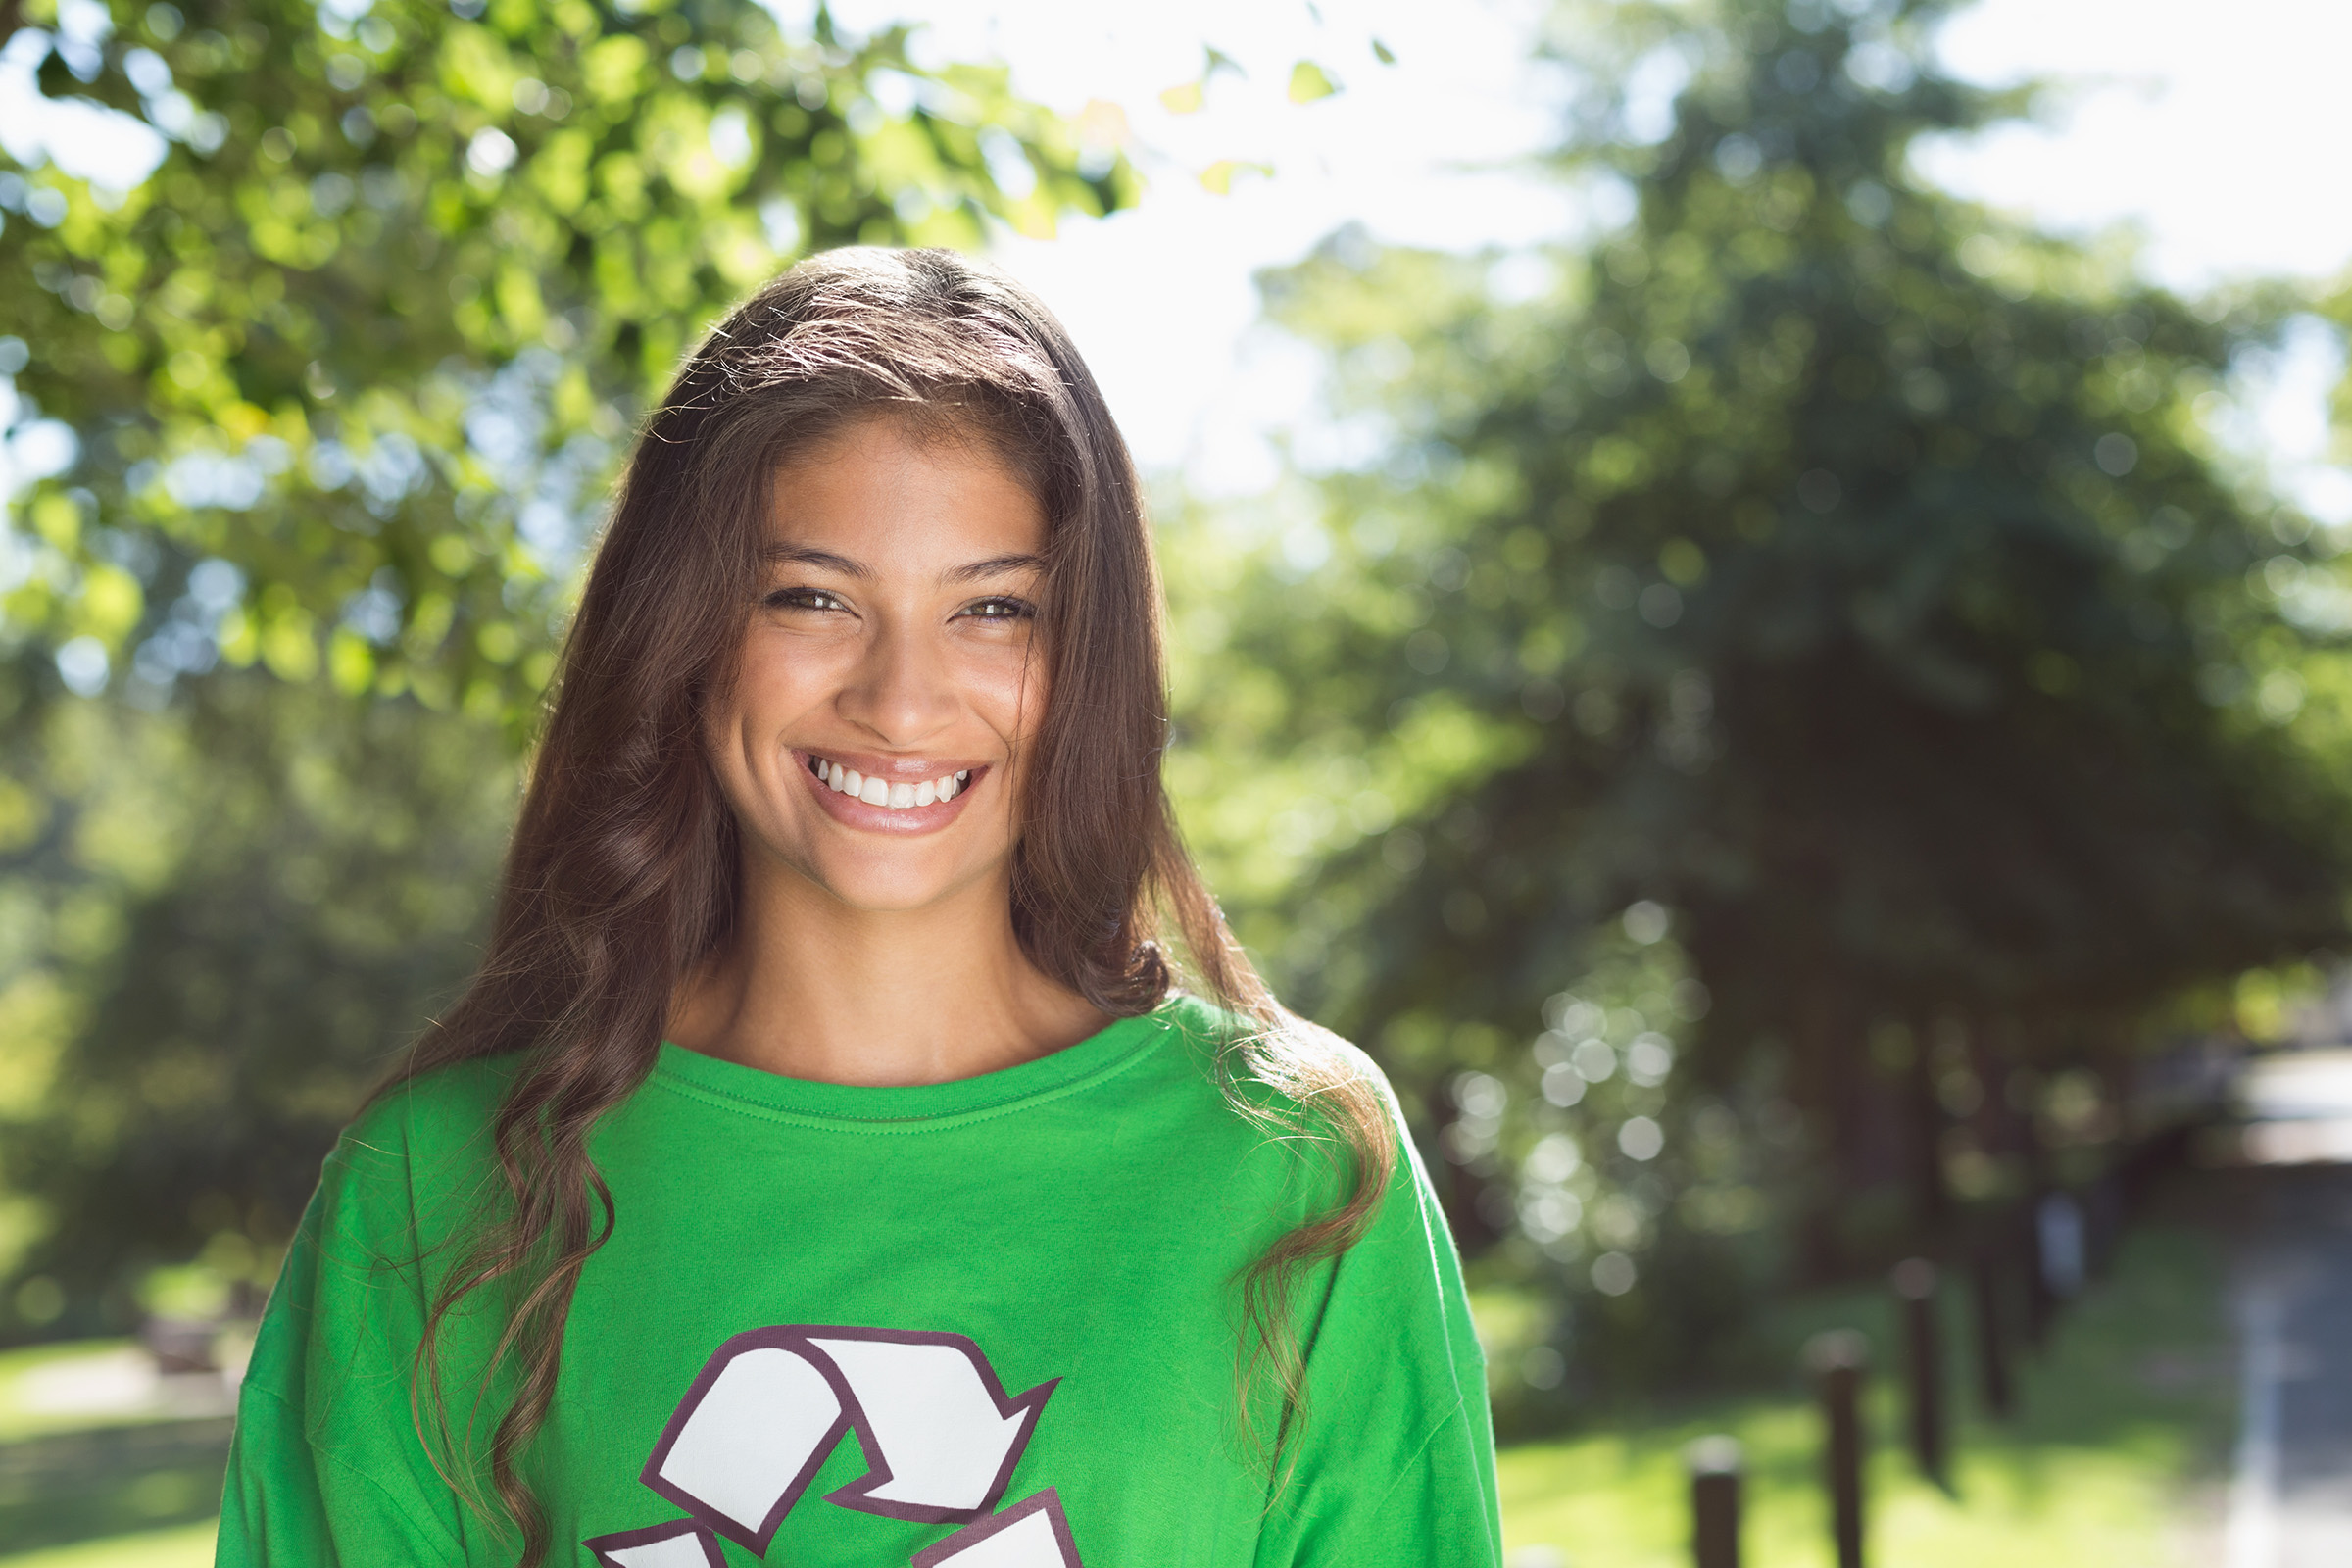 a person wearing a green shirt smiling for a photo